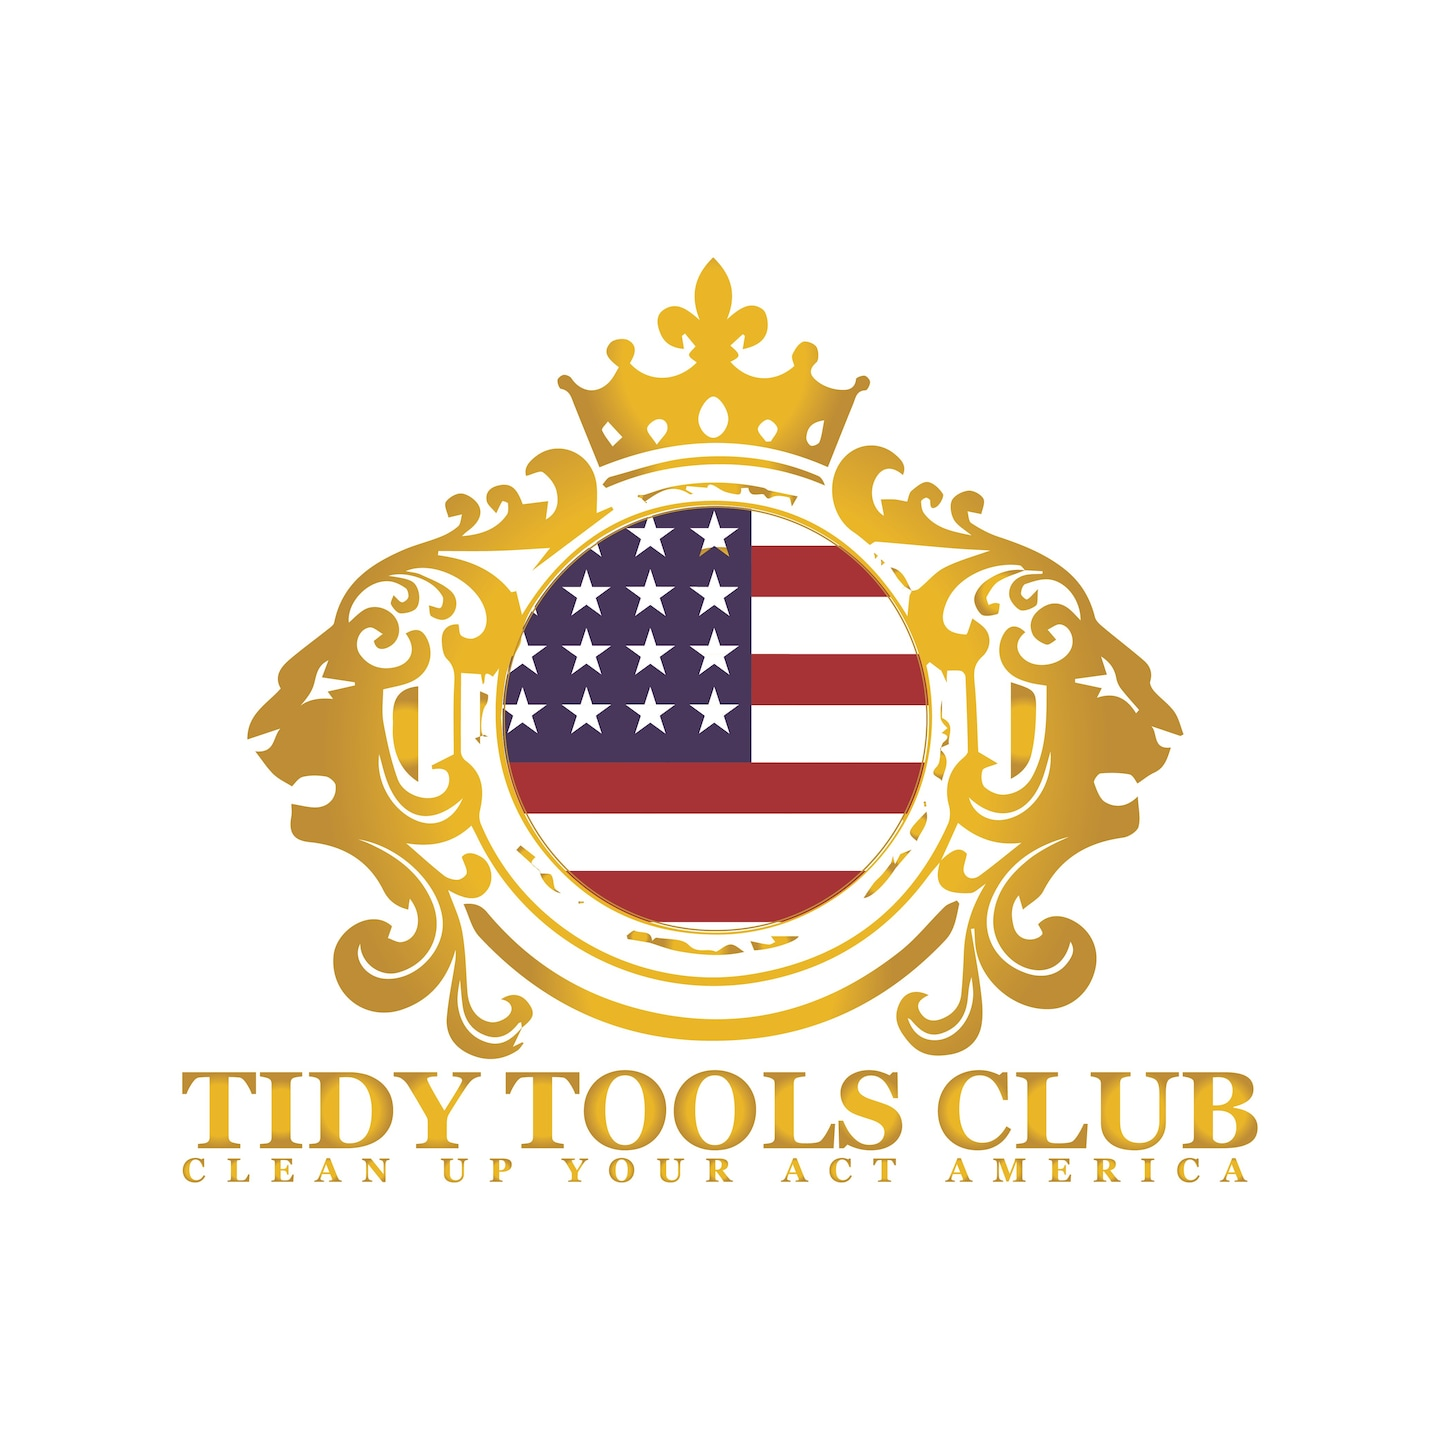 Tidy Tools Club